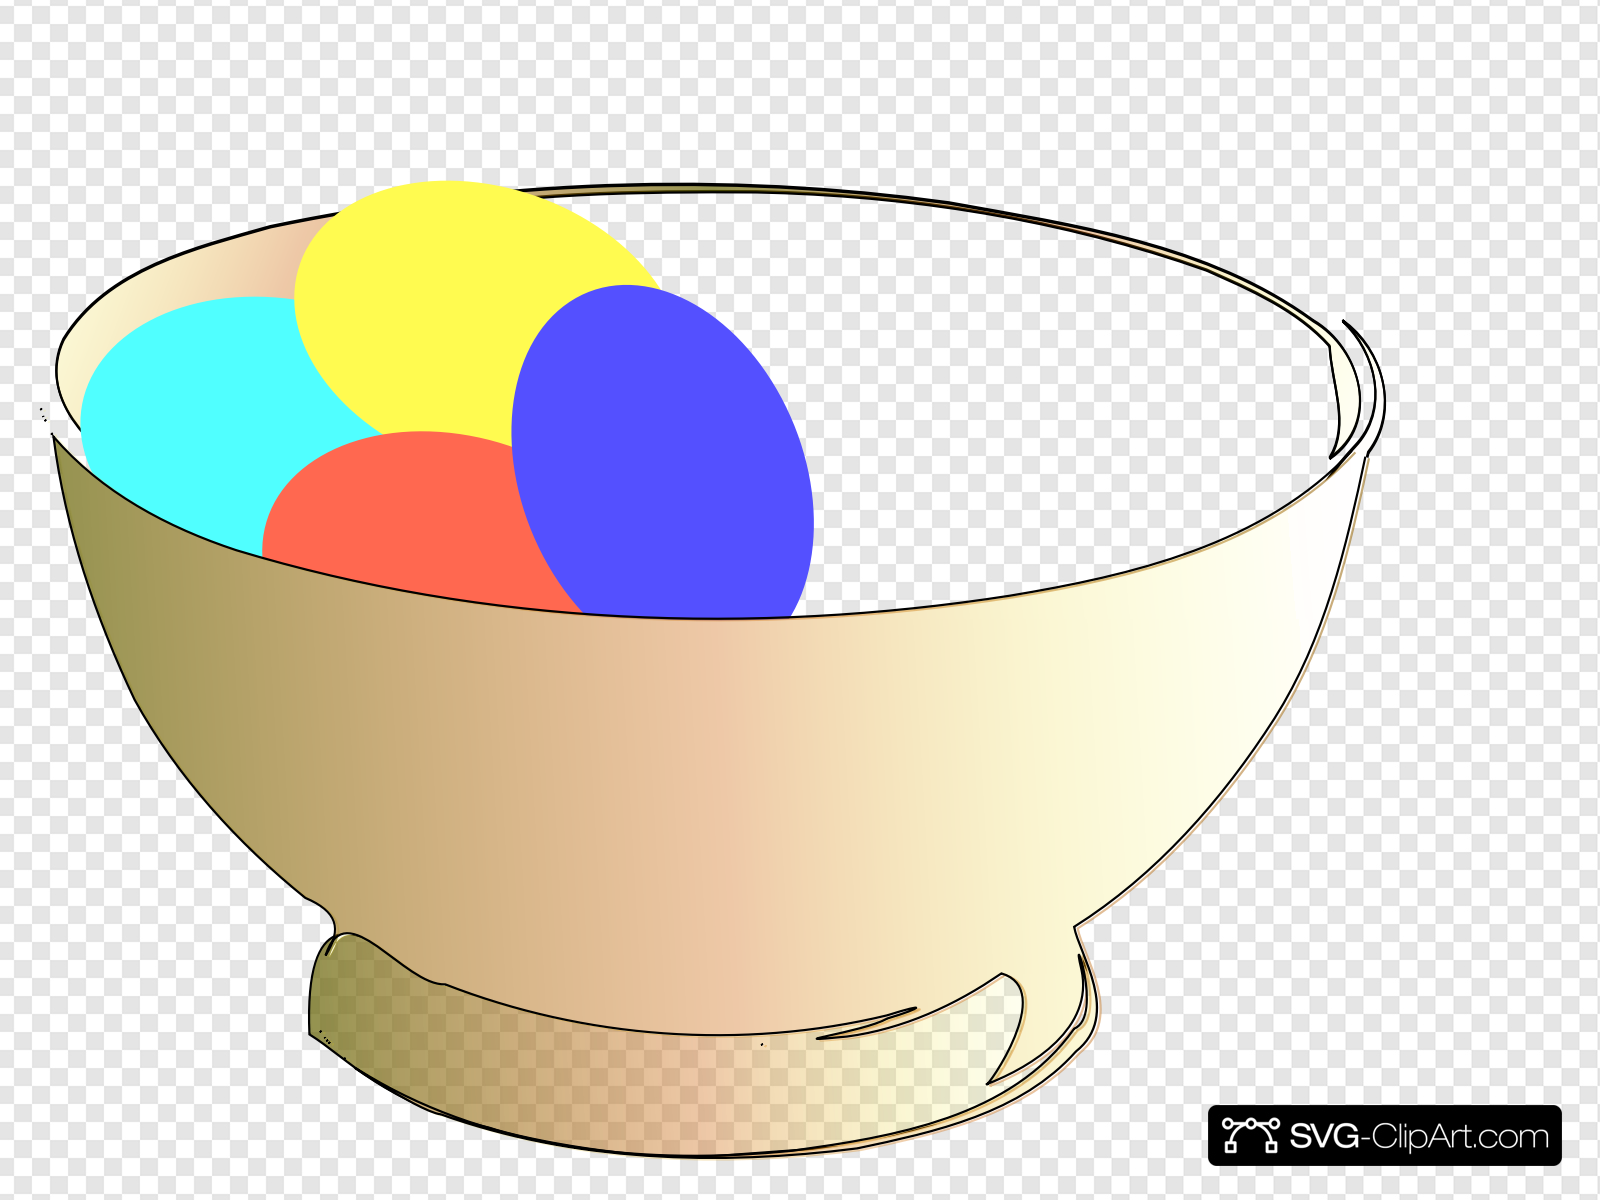 Sdl clipart jpg transparent library Bowl Of Easter Eggs Clip art, Icon and SVG - SVG Clipart jpg transparent library